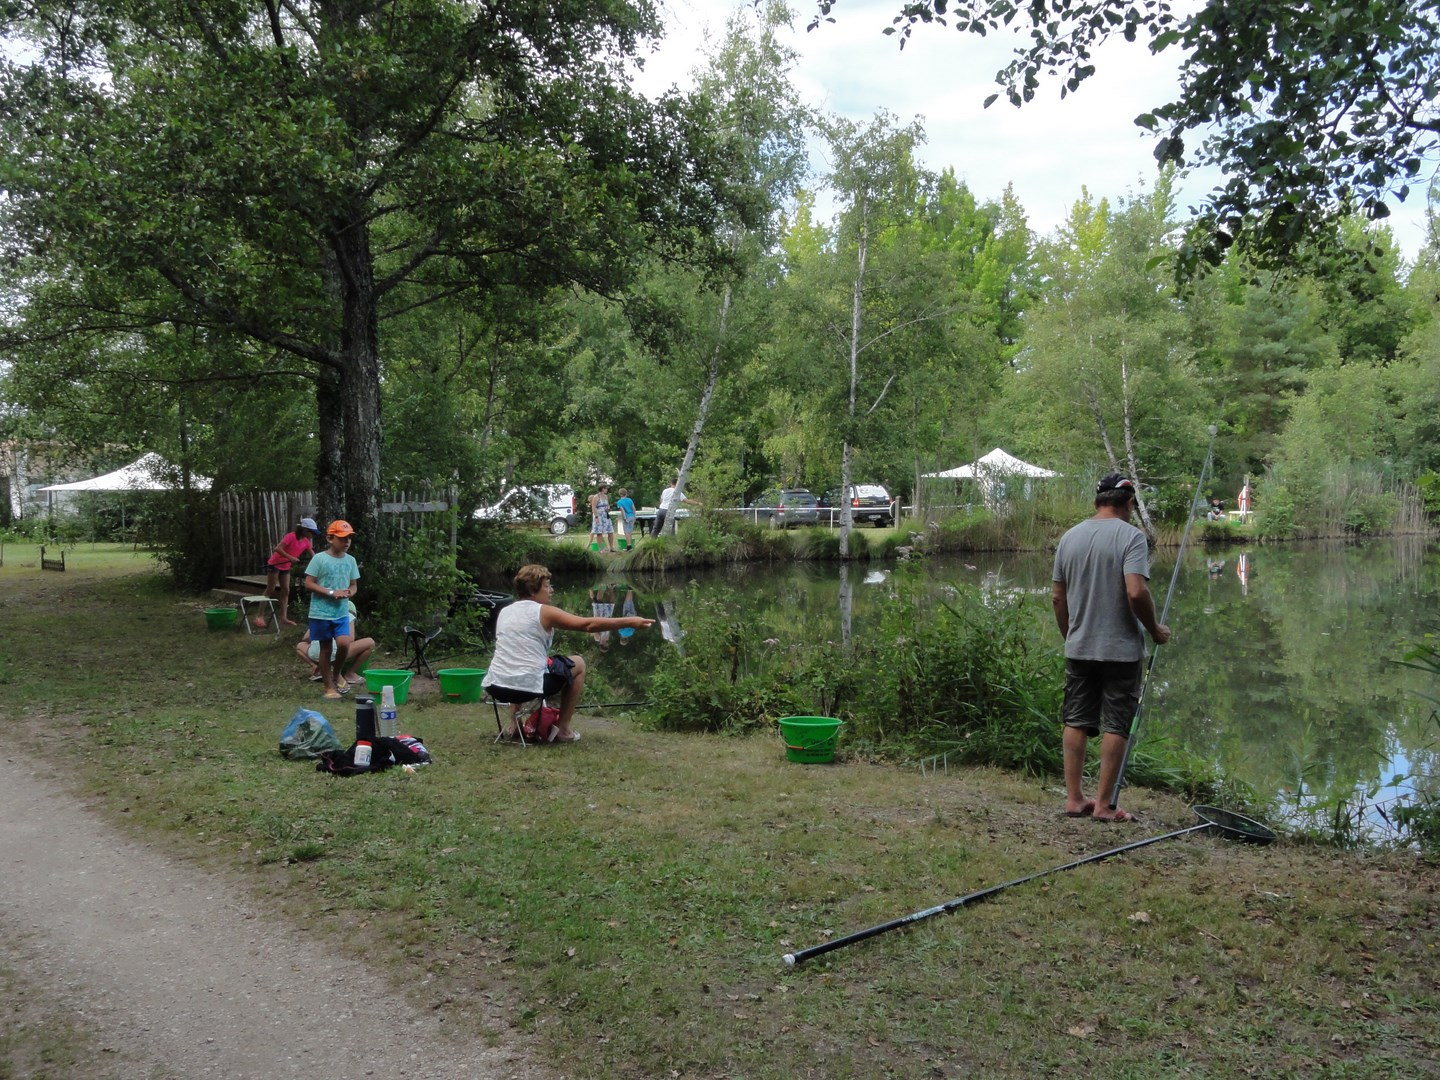 Fishing competition on the lake of the campsite